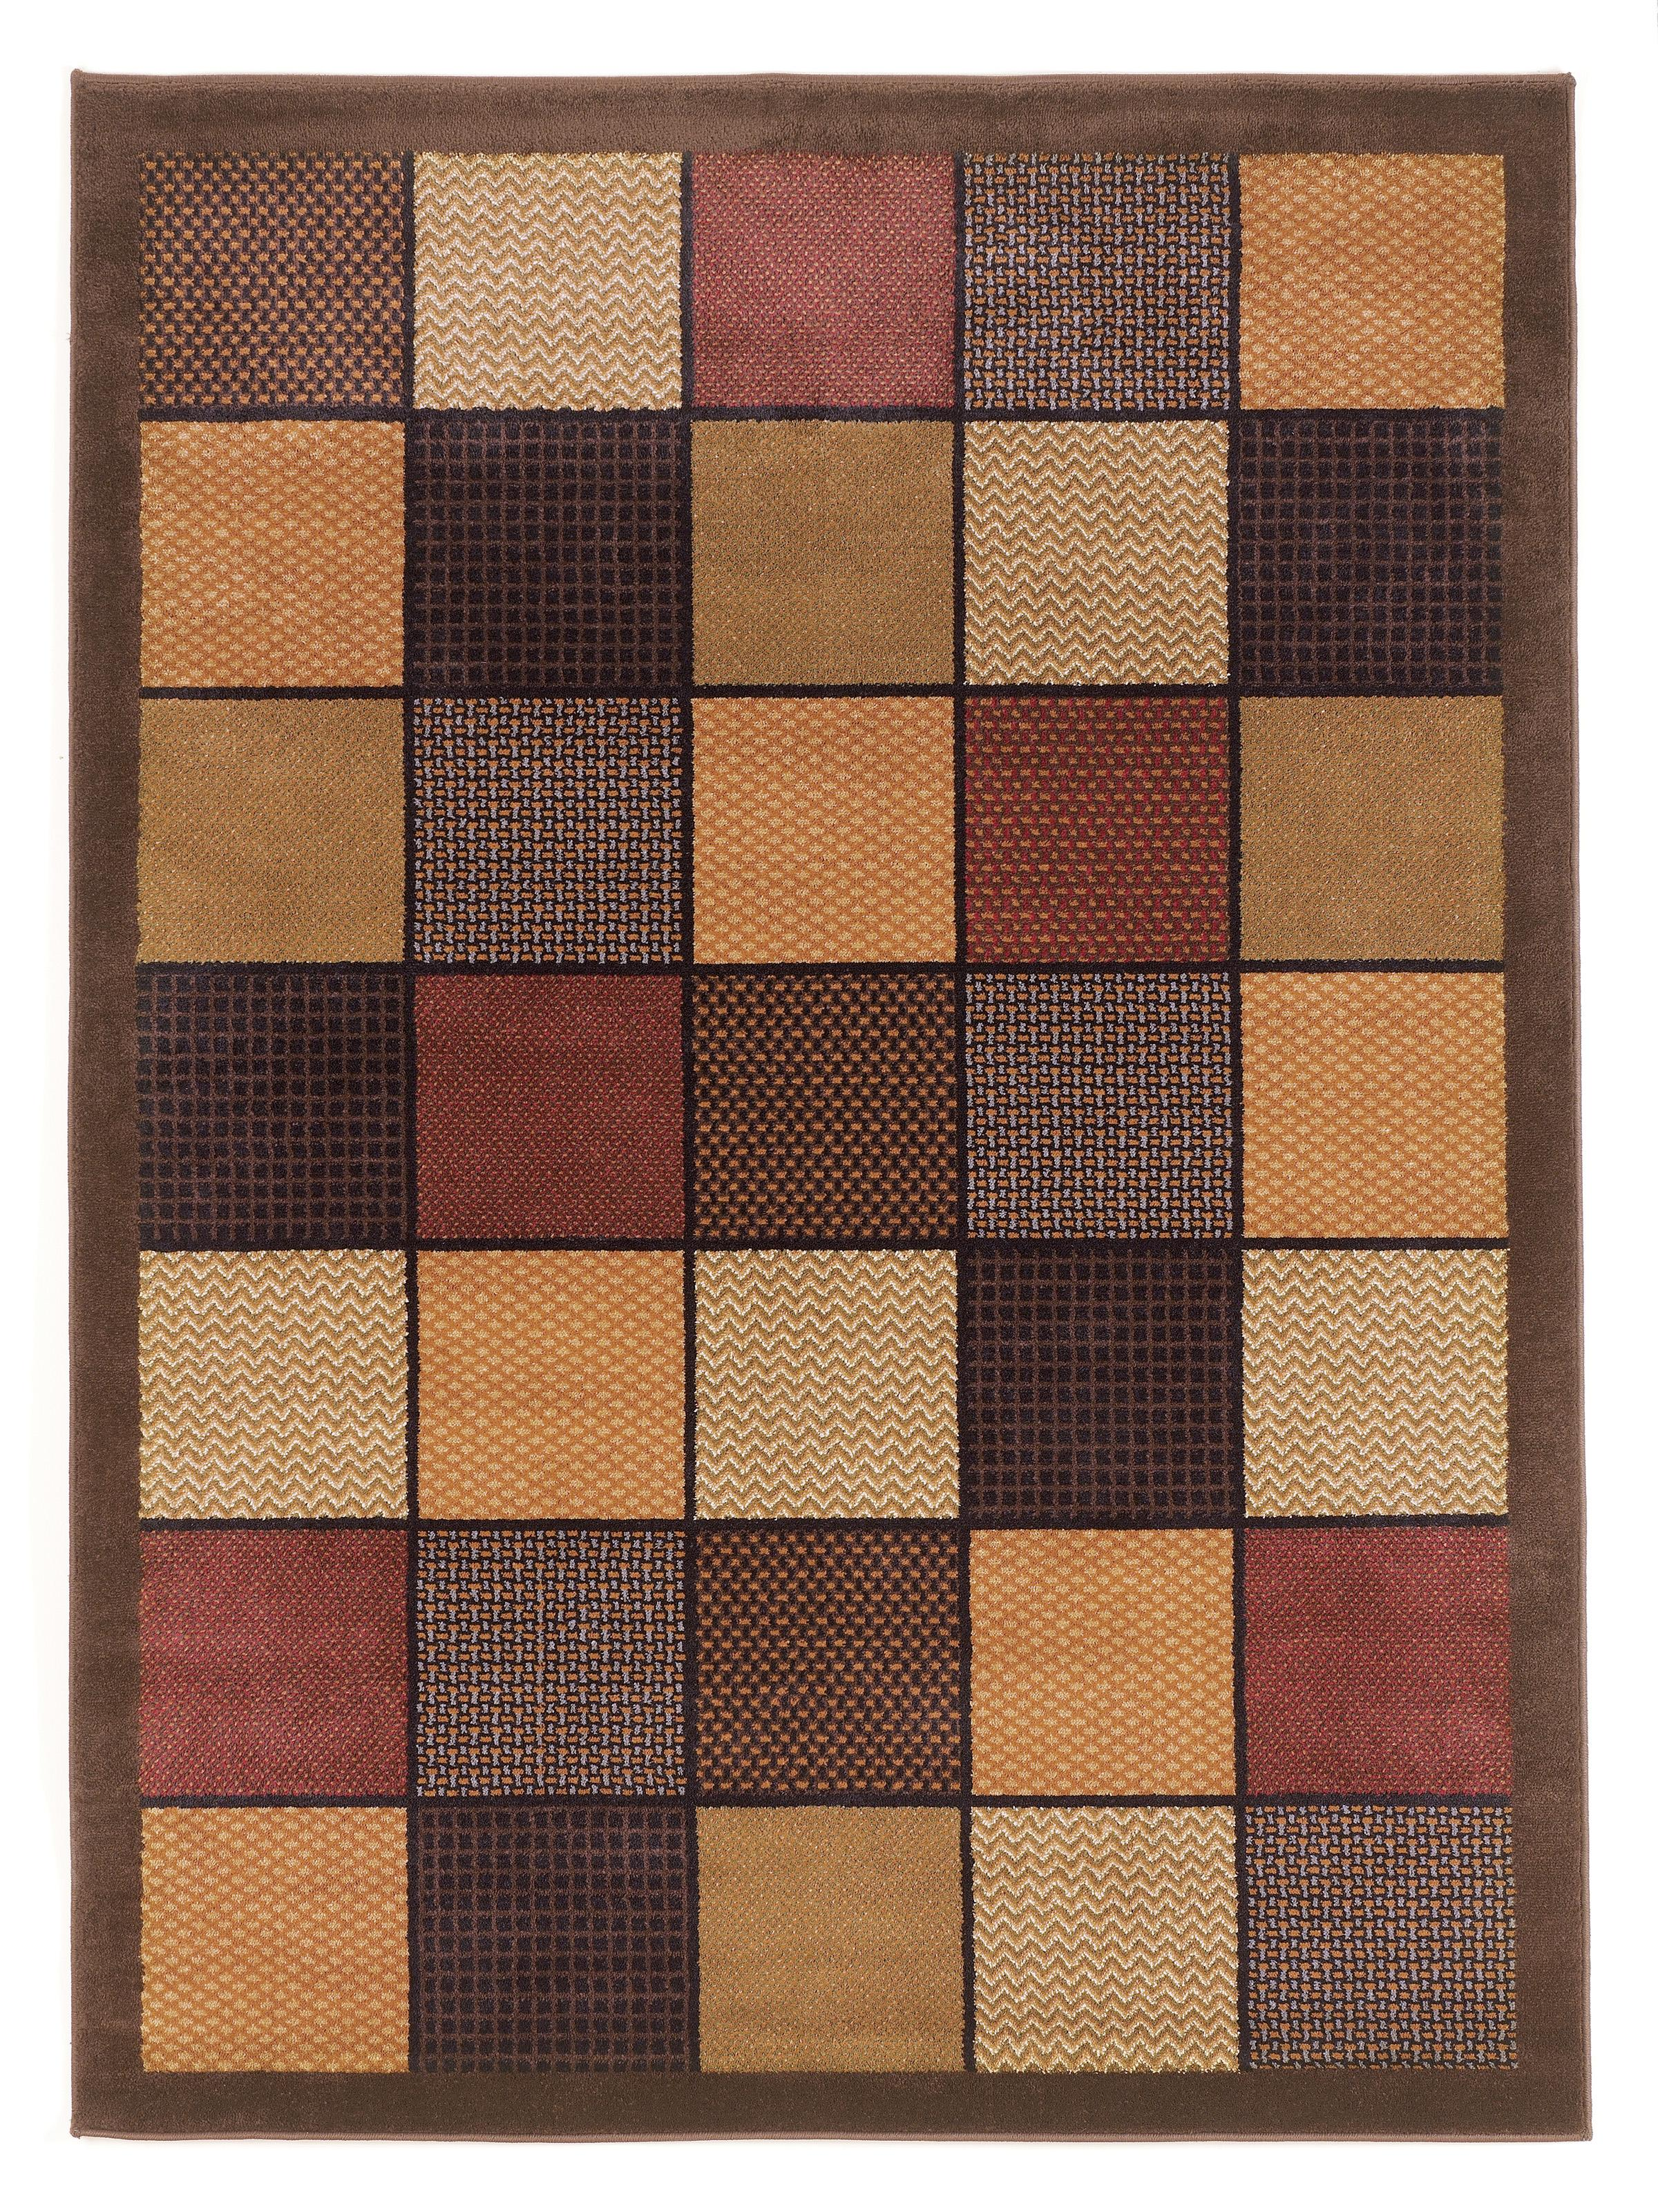 Contemporary Area Rugs Signature Design By Ashley Contemporary Area Rugs